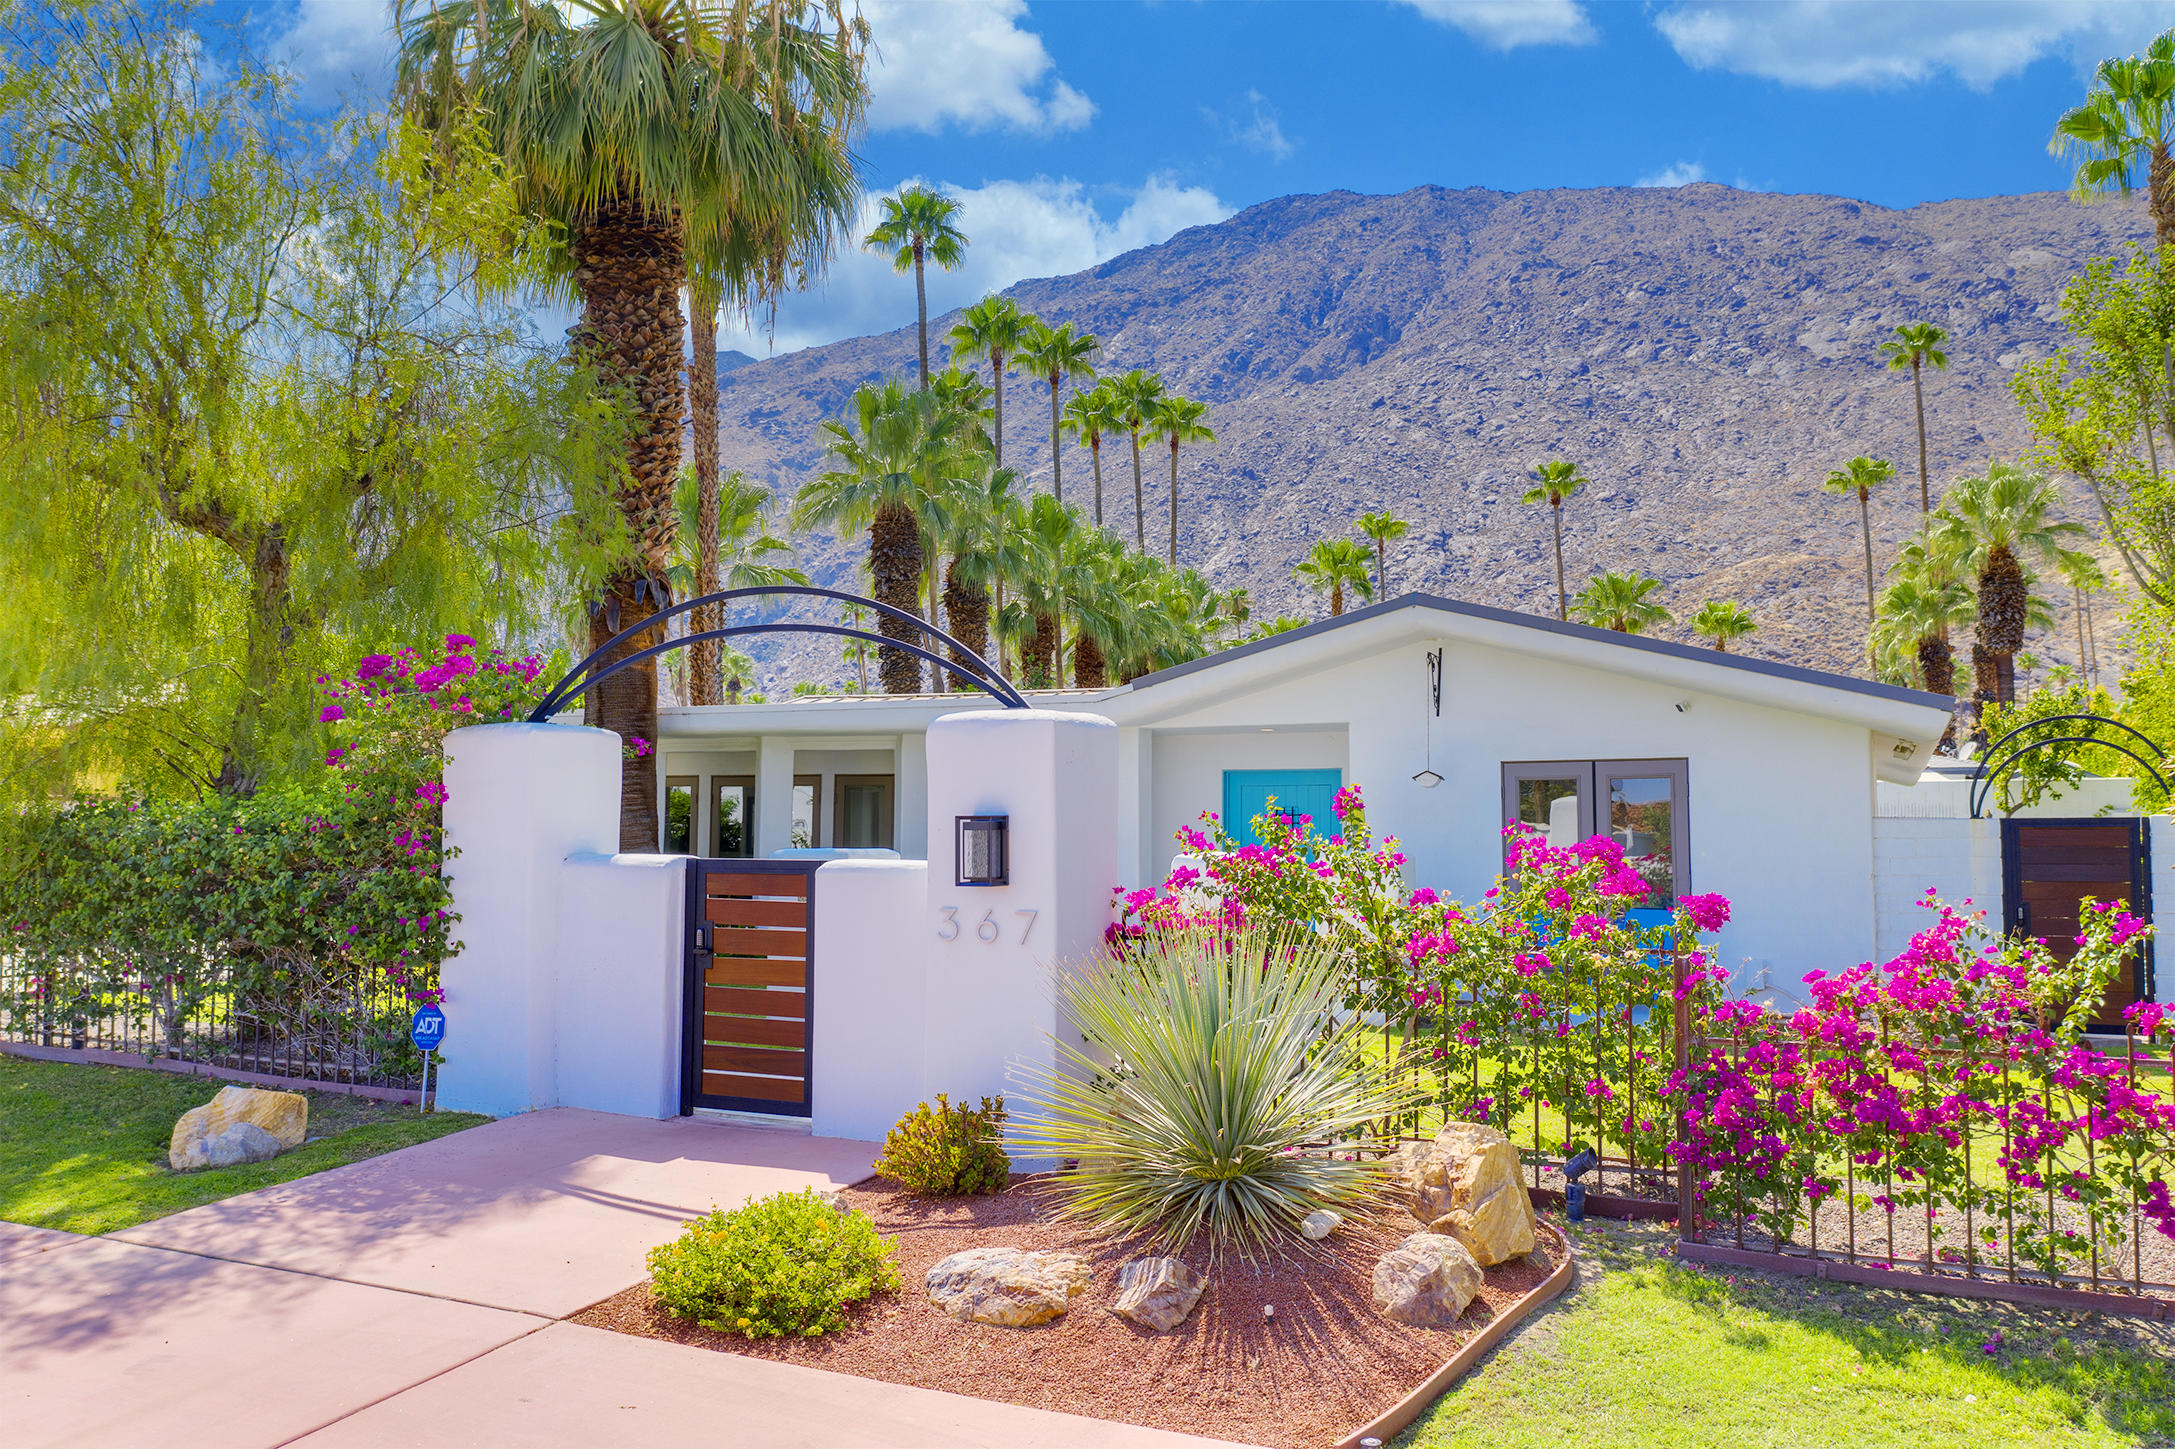 Photo of 367 S Cahuilla Road, Palm Springs, CA 92262